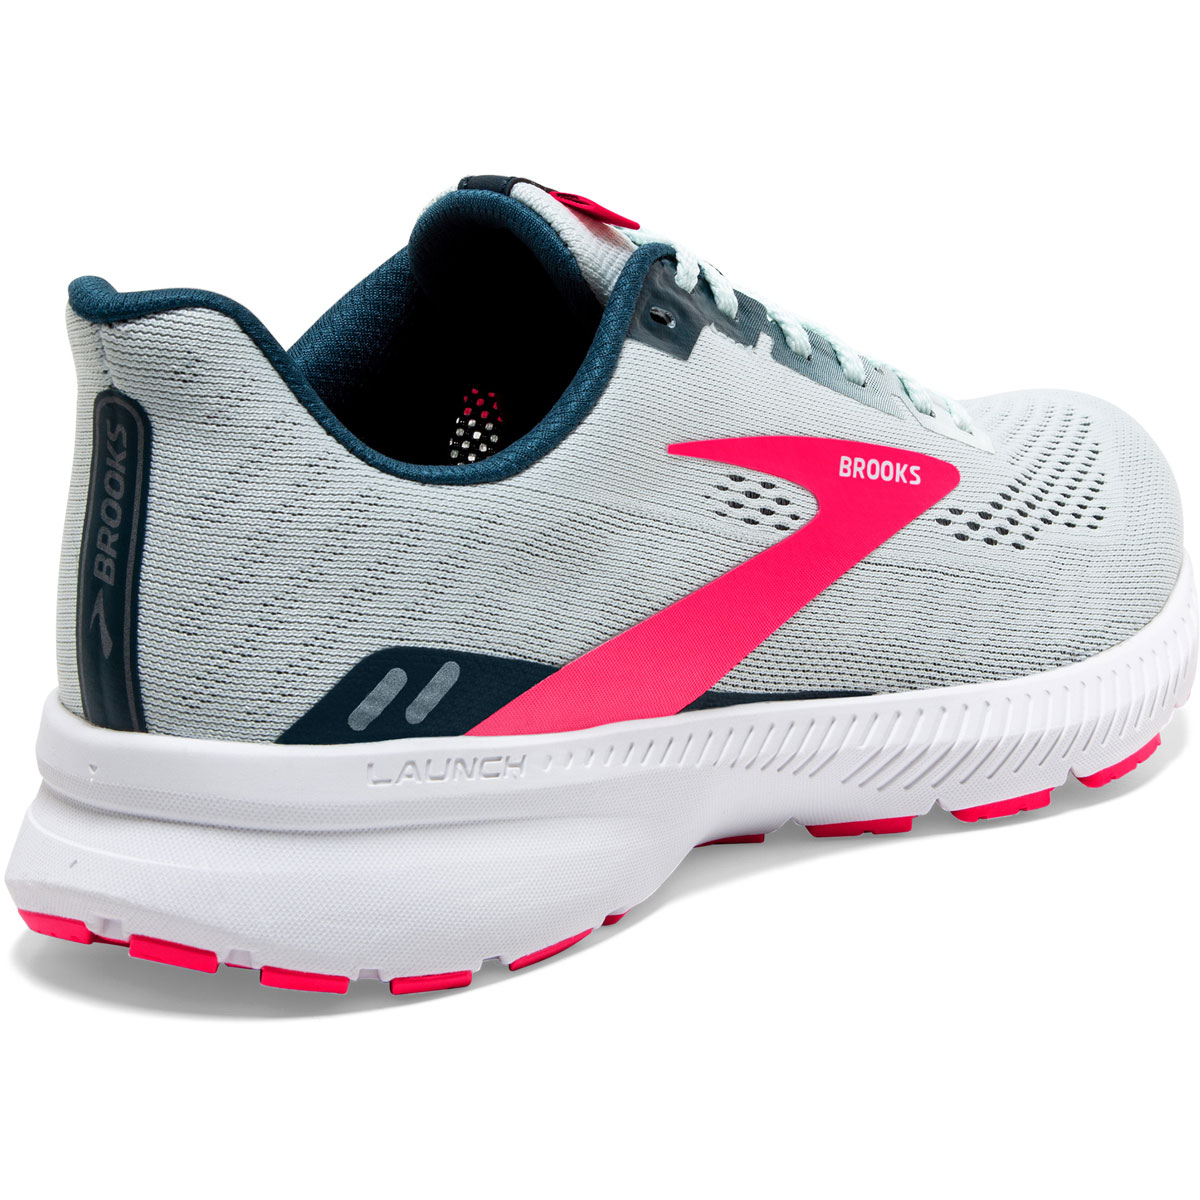 Women's Brooks Launch 8 Running Shoe - Color: Ice Flow/Navy/Pink - Size: 5 - Width: Regular, Ice Flow/Navy/Pink, large, image 5